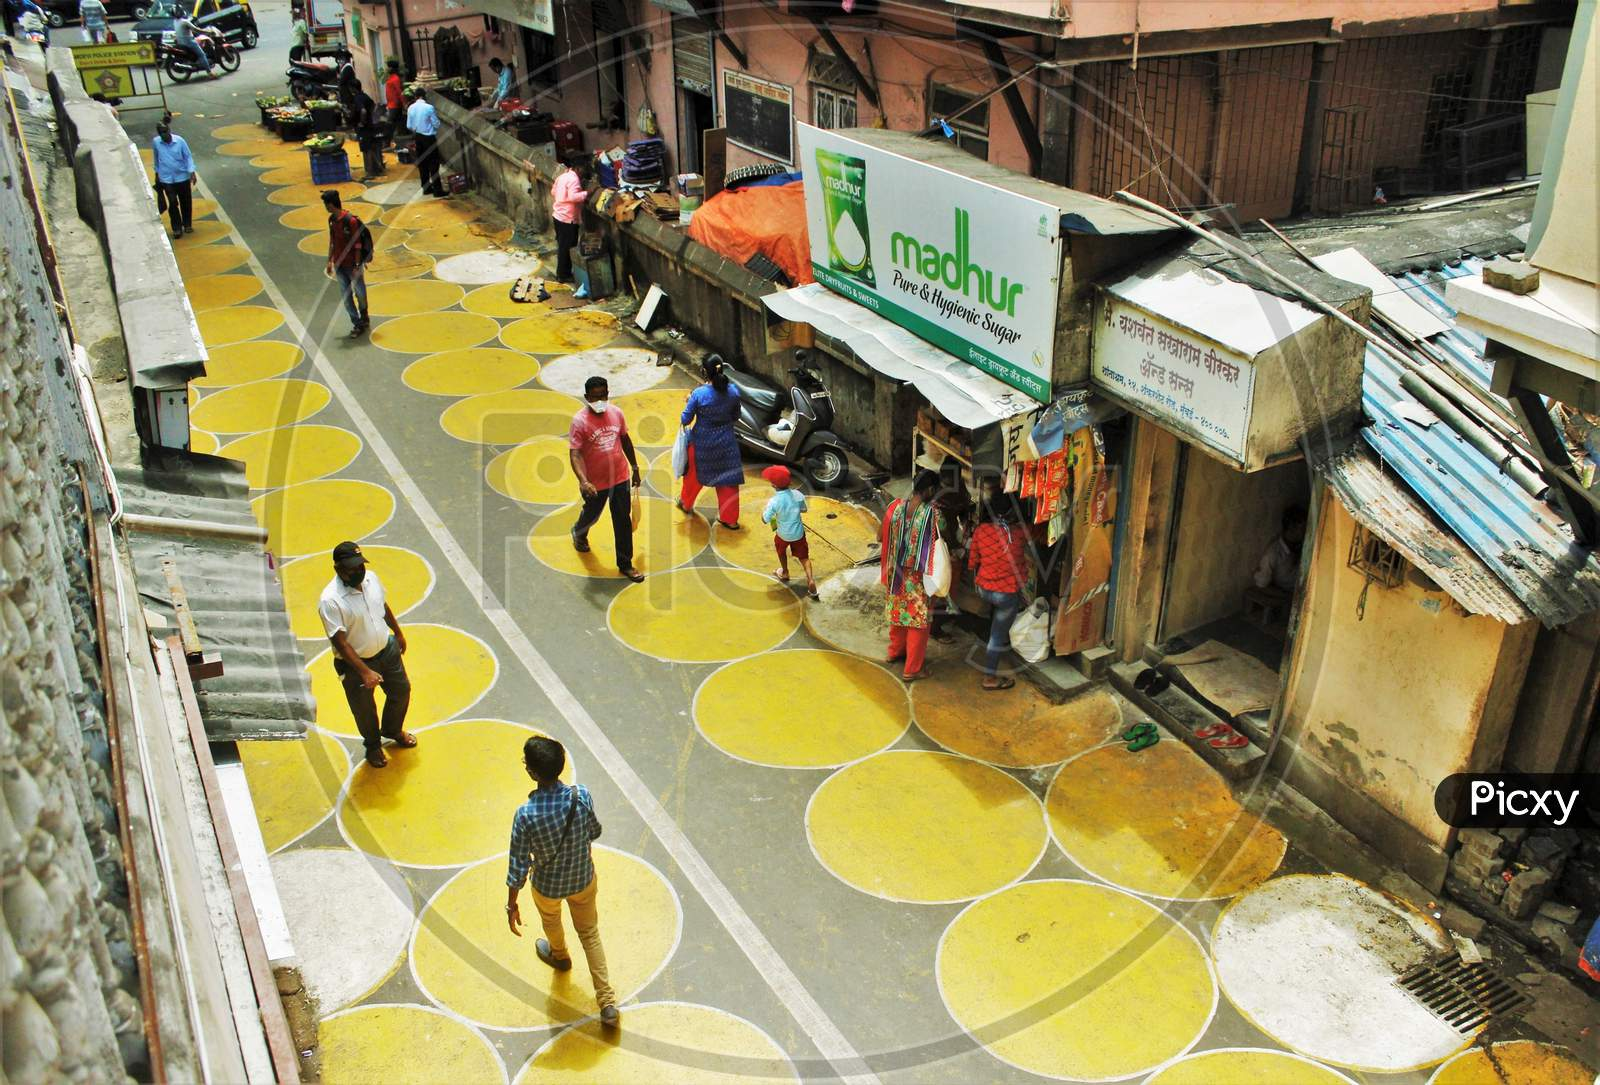 People Walk On Yellow Circles Painted For Physical Distancing At A Residential-Cum-Market Area, In Mumbai, India On June 29, 2020.